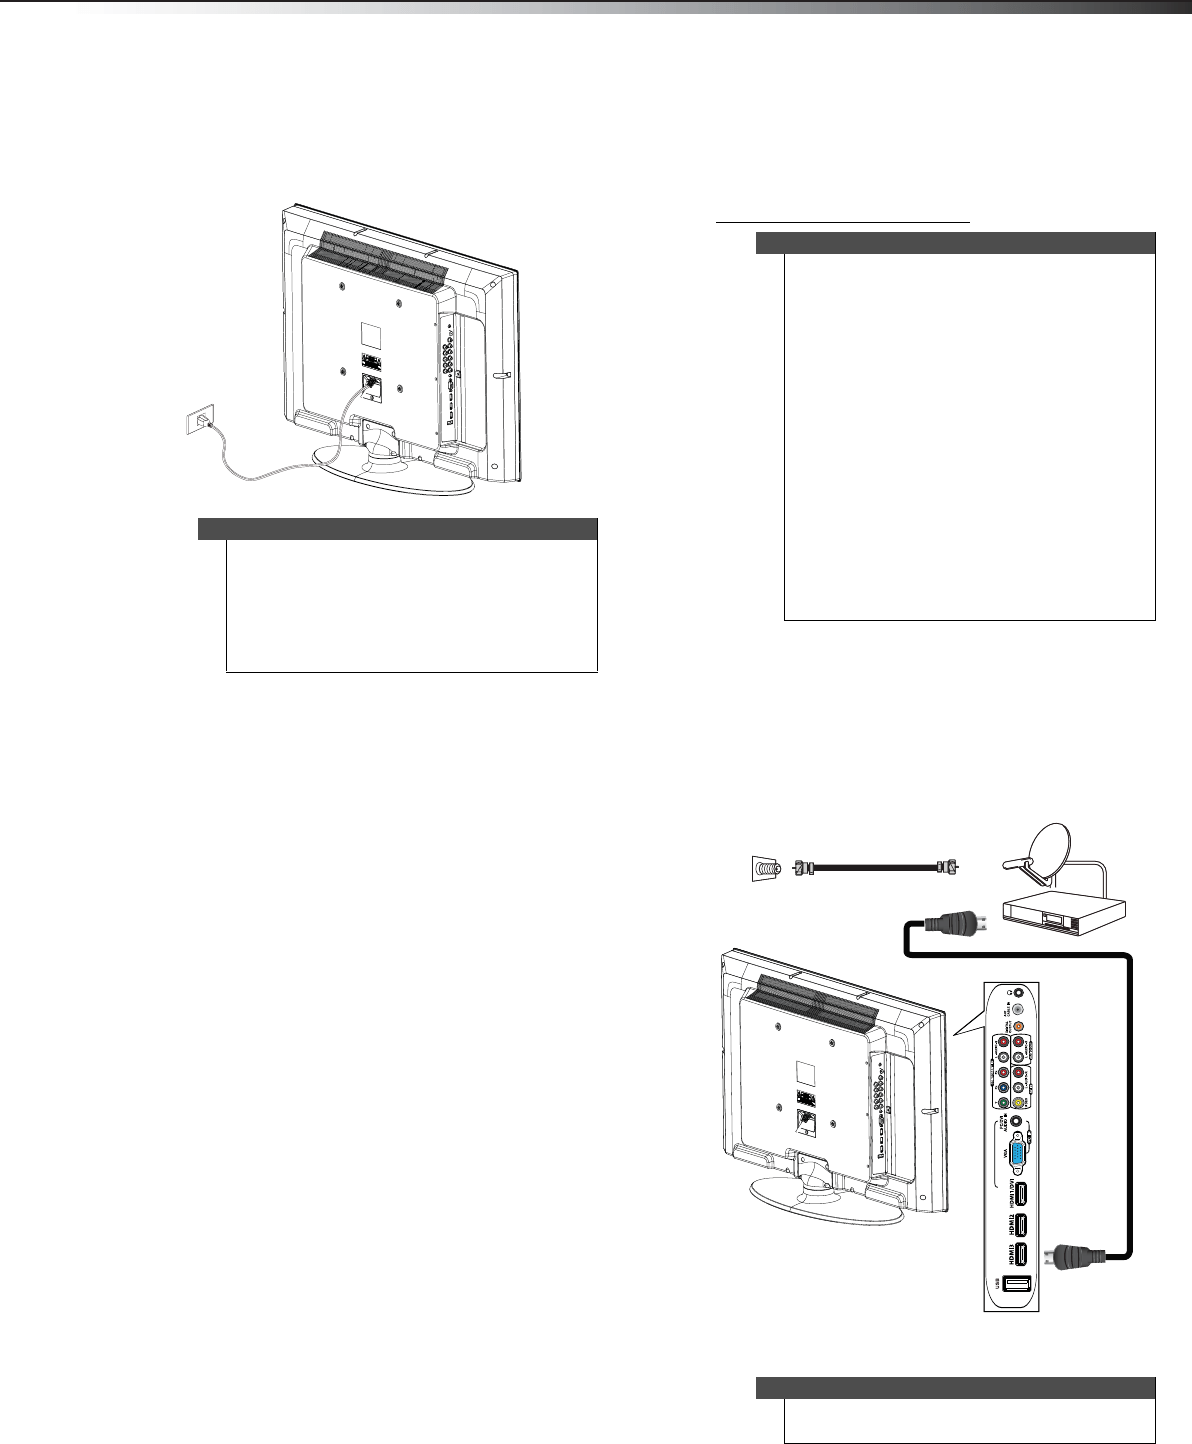 Page 13 of Dynex Flat Panel Television DX-32L100A13 User